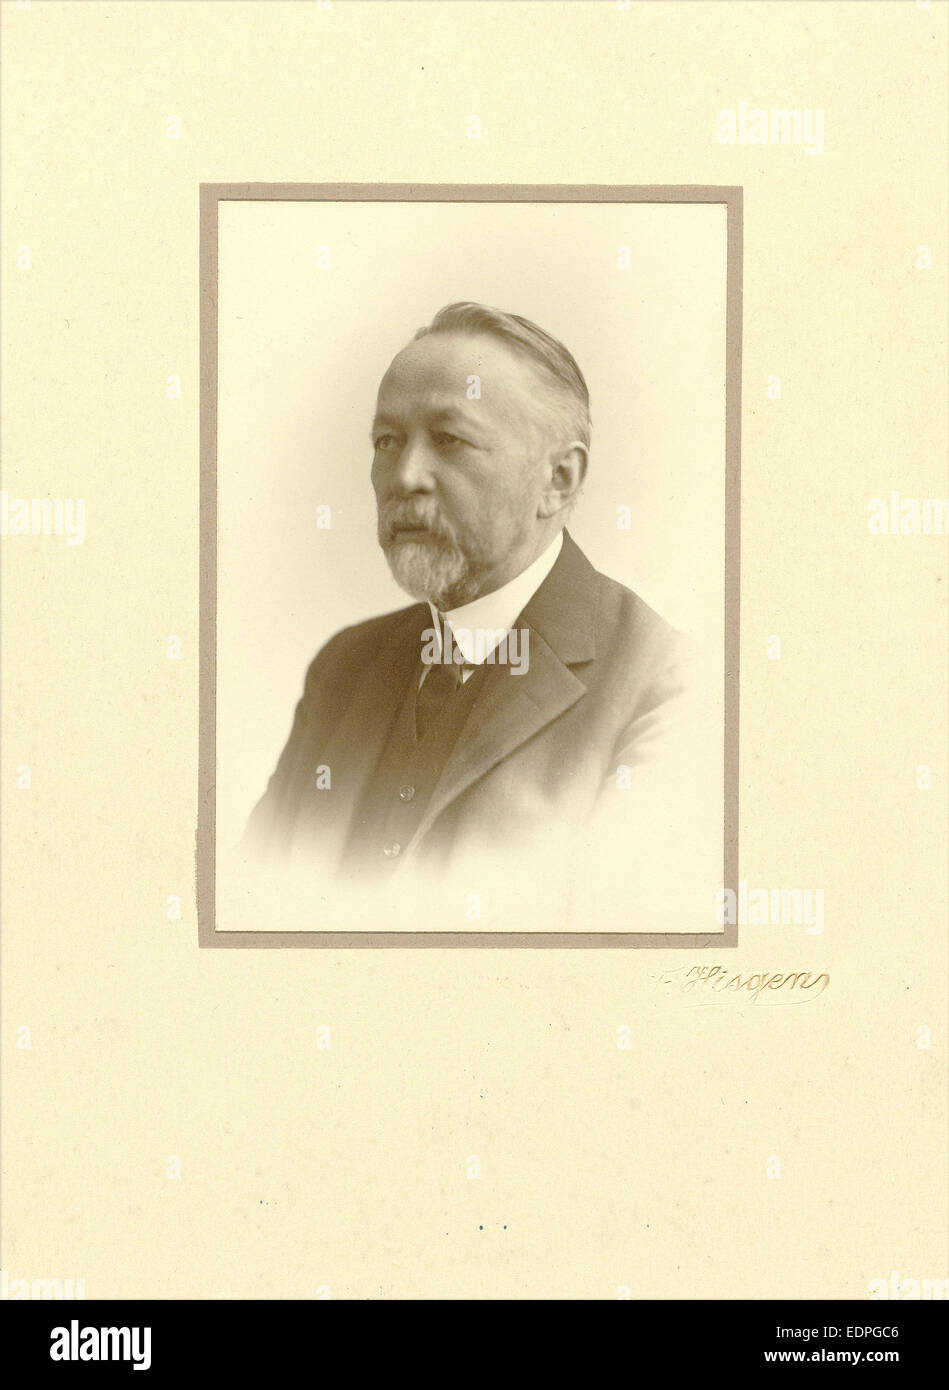 Andries Bonger in middle age, Julius Heinrich Hisgen, Firma F. Hisgen, 1930 - 1936 - Stock Image